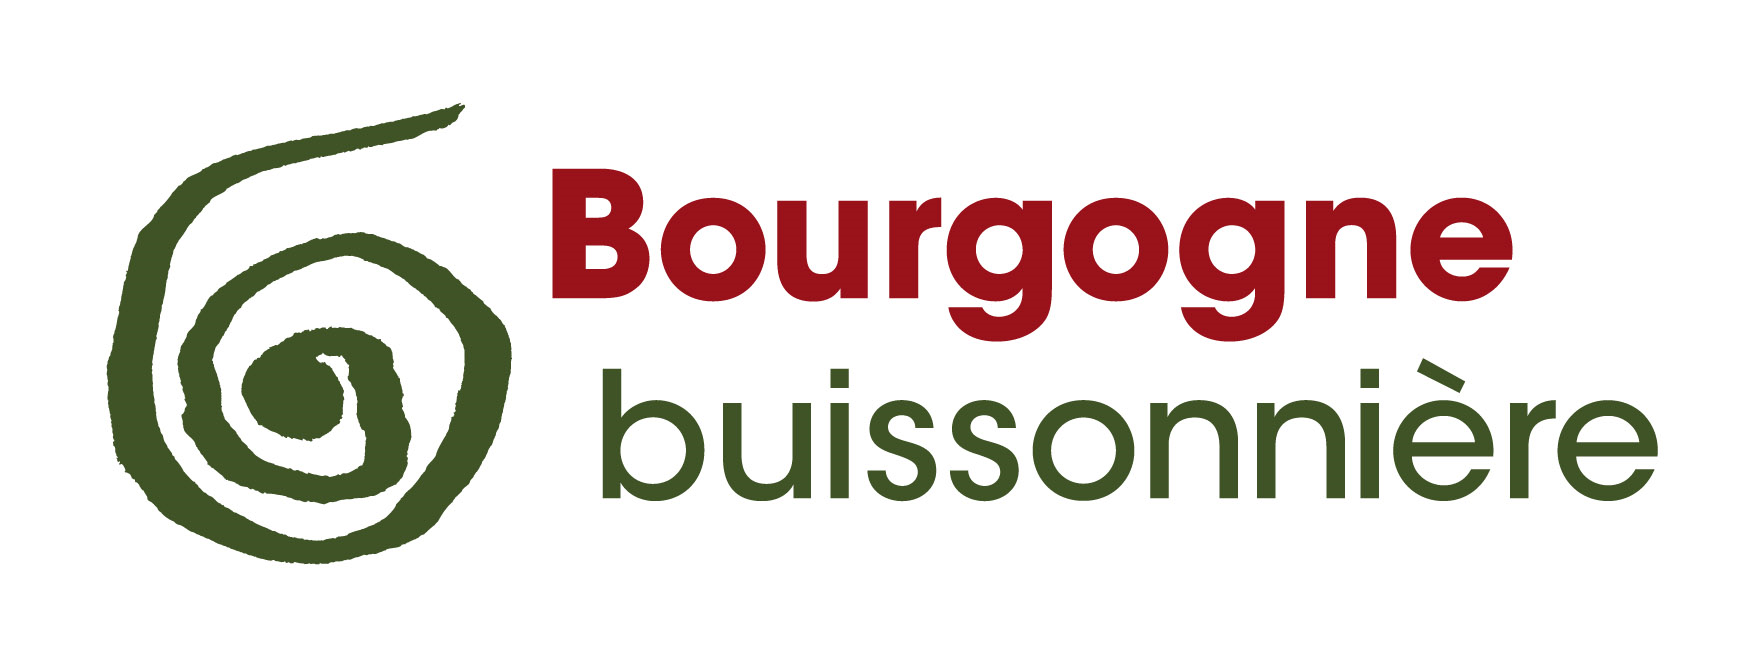 Bourgogne buissonnière